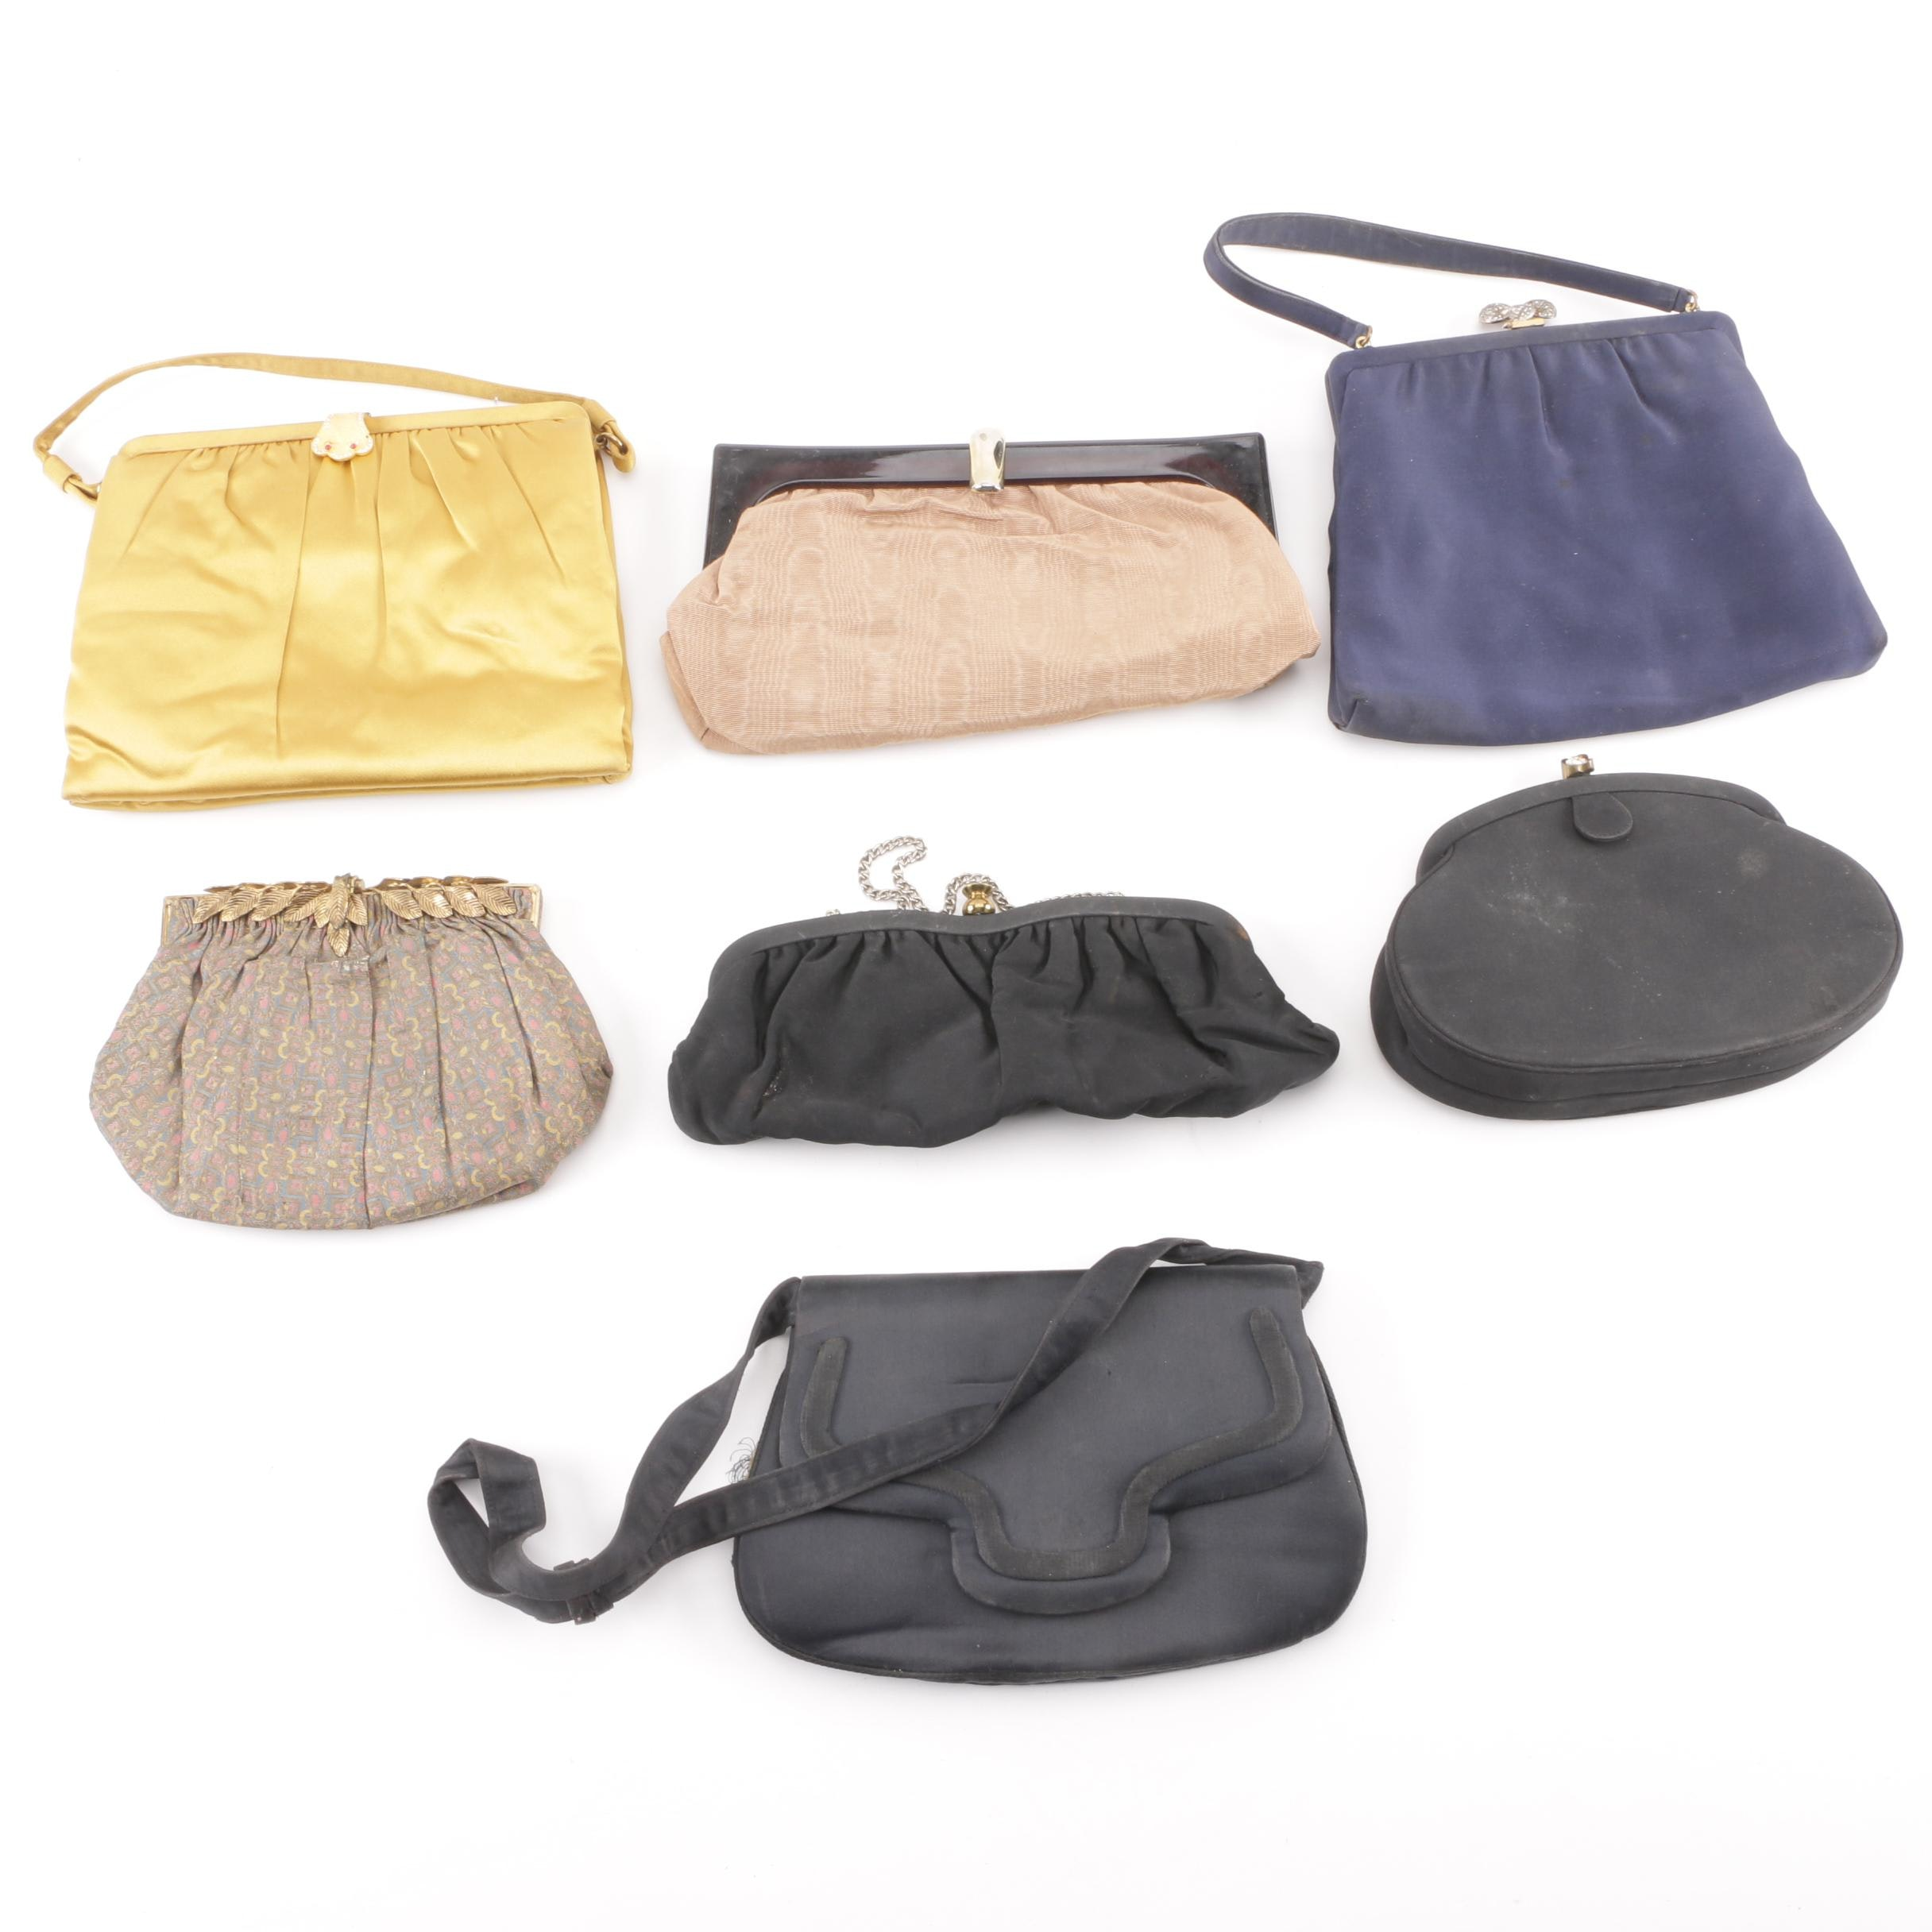 Fabric Evening Bags and Clutches Including Morris Moskowitz and Crown Lewis